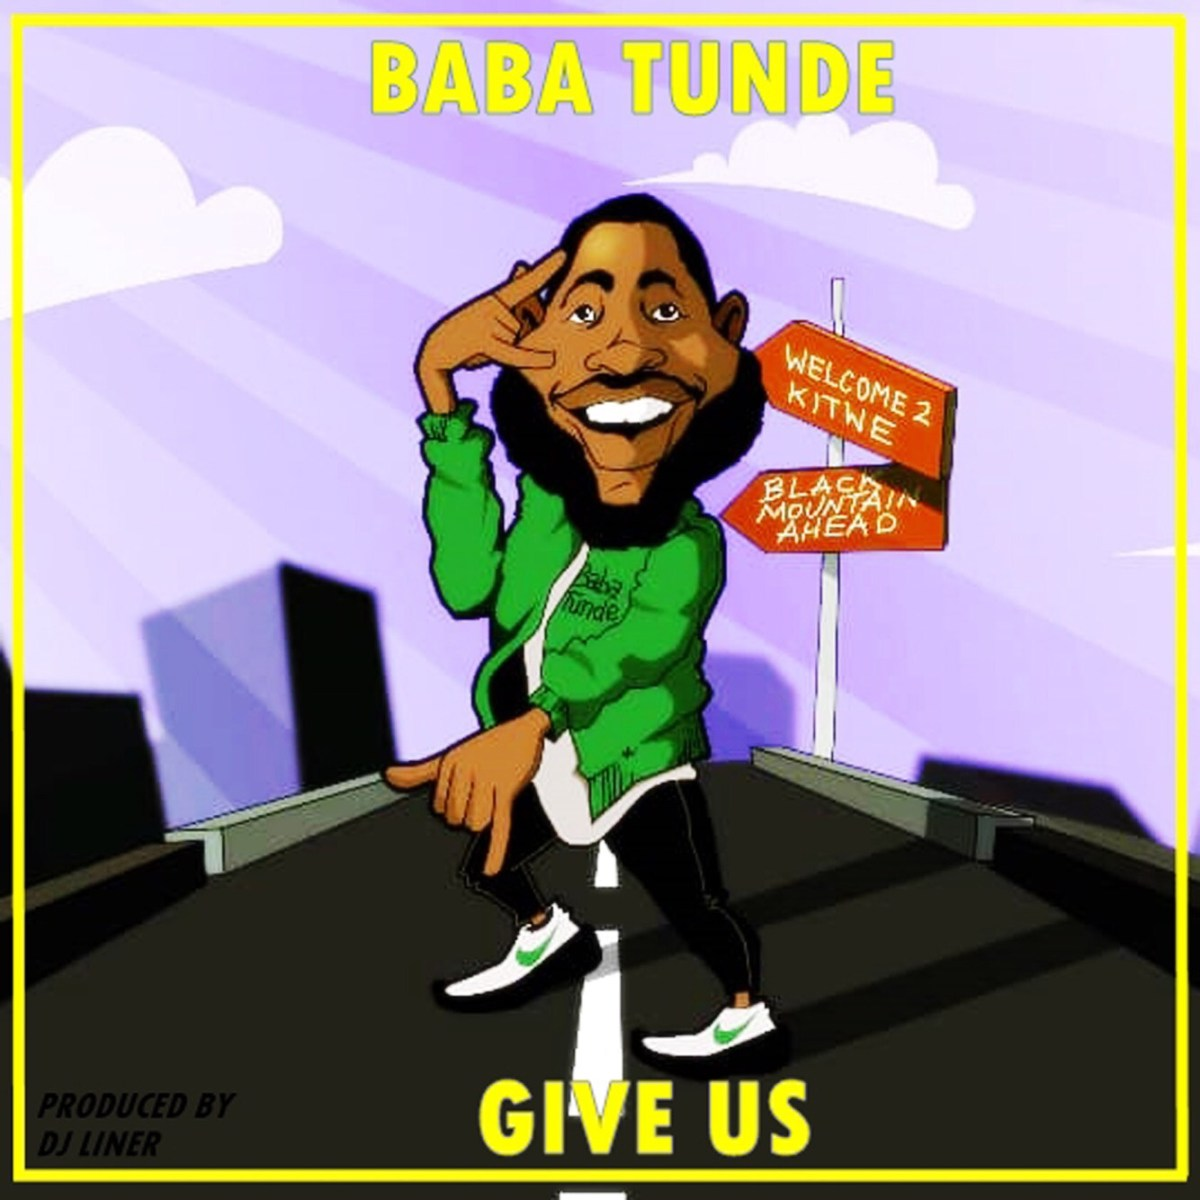 Baba Tunde - Give Us